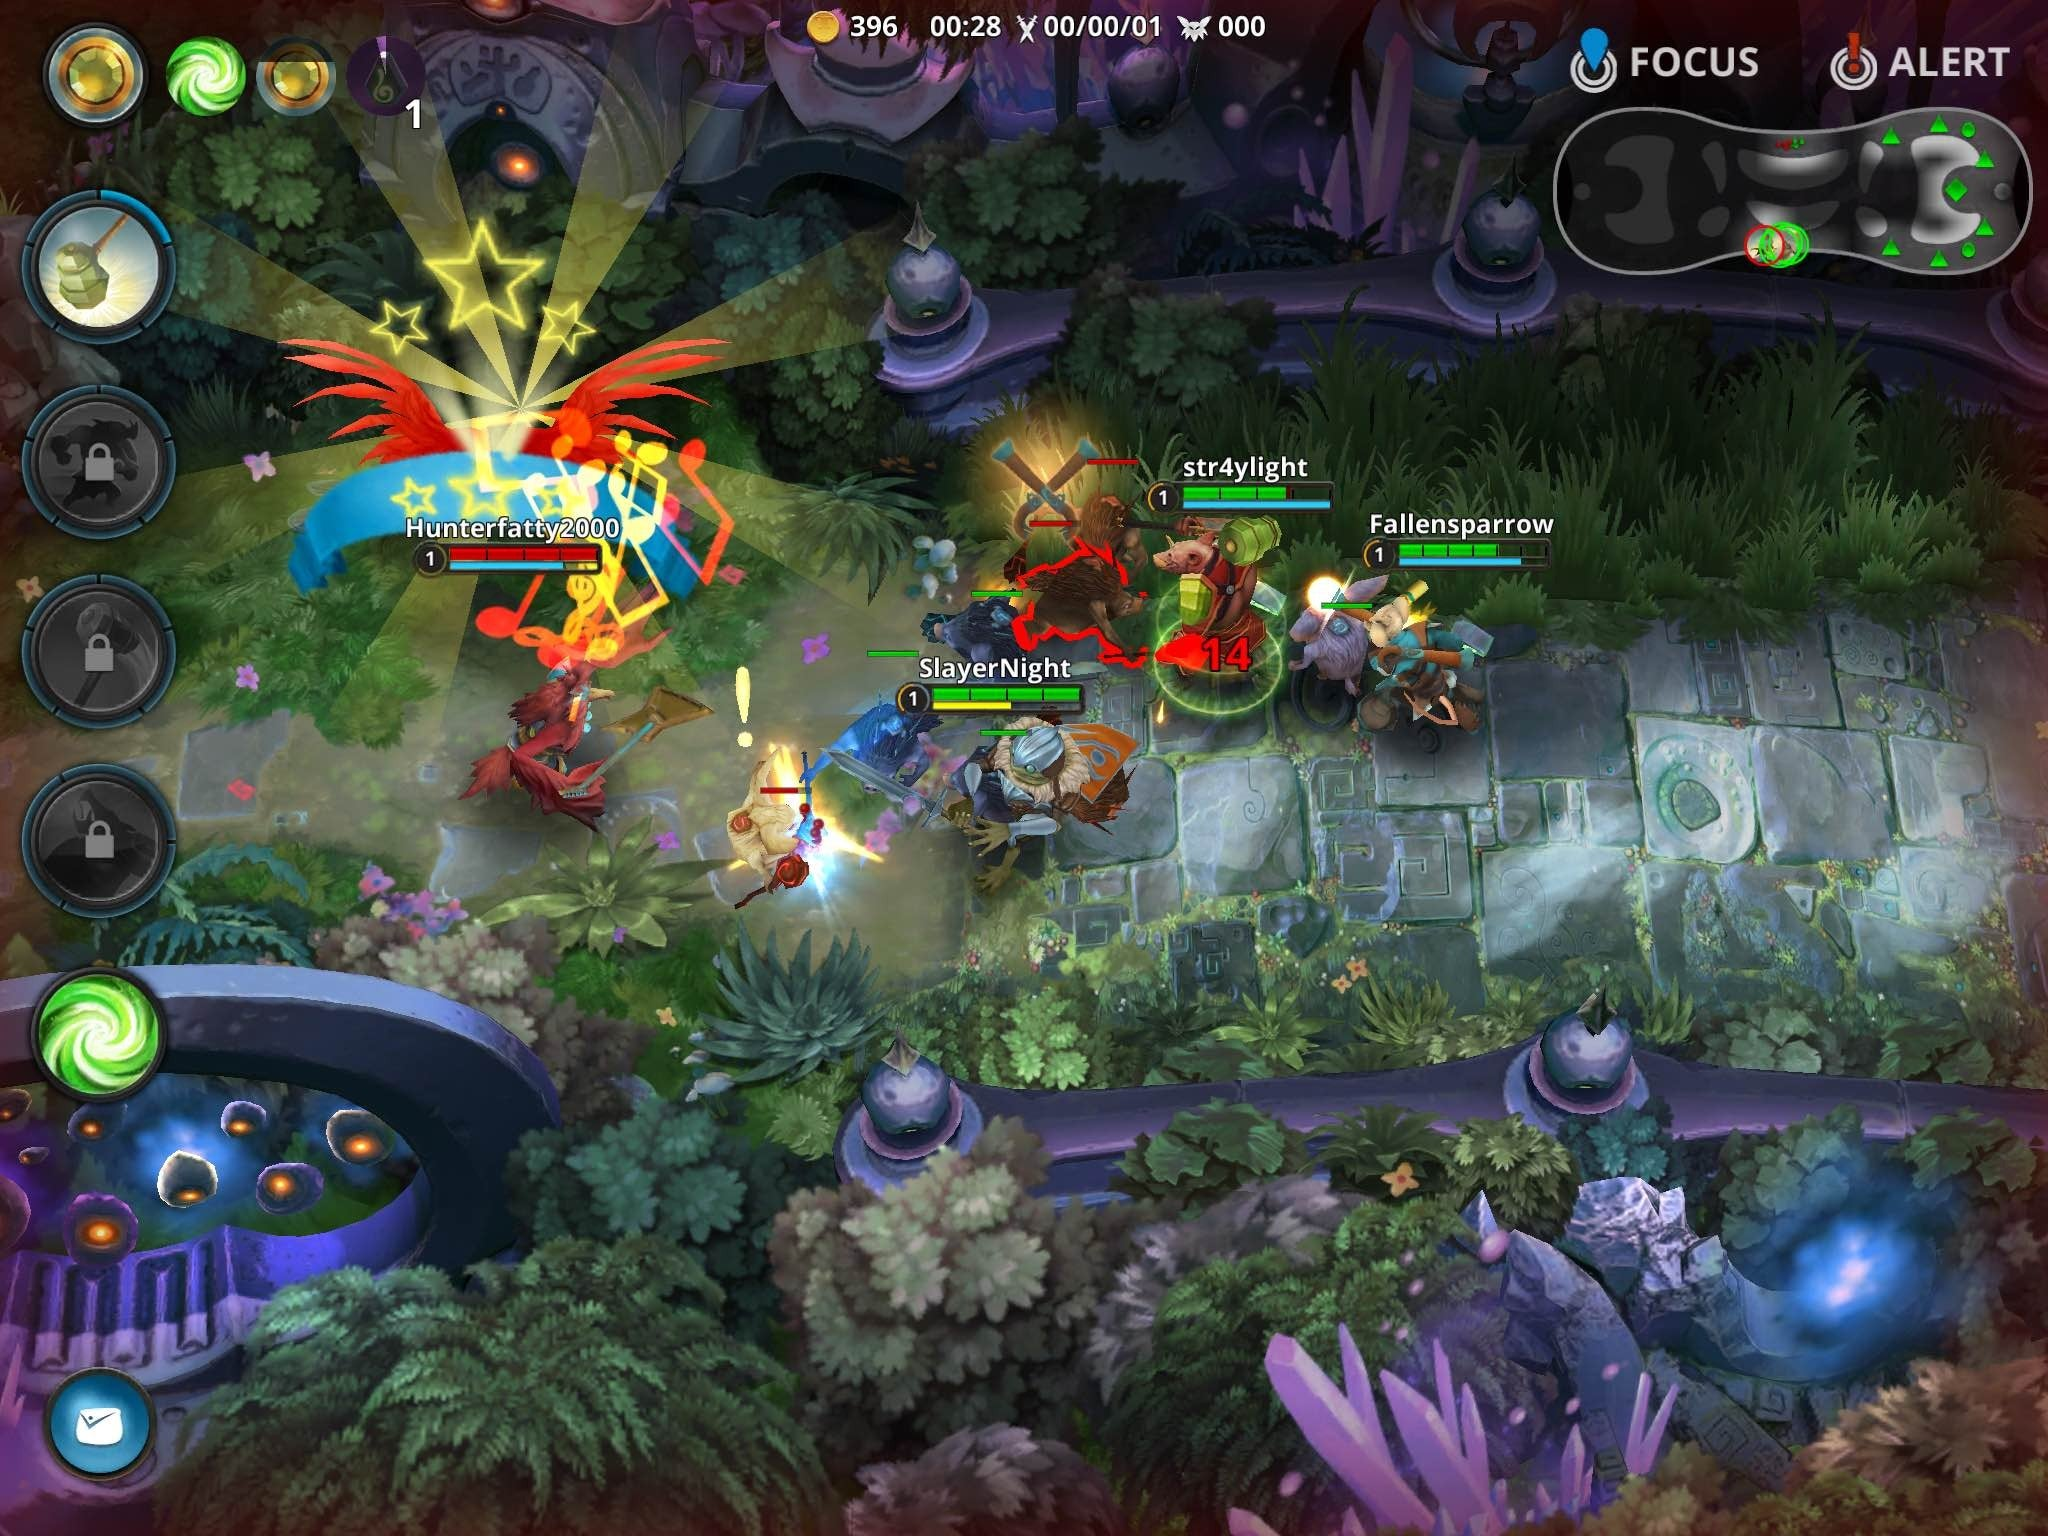 moba gone mobile ipad and iphone games that deliver a league of